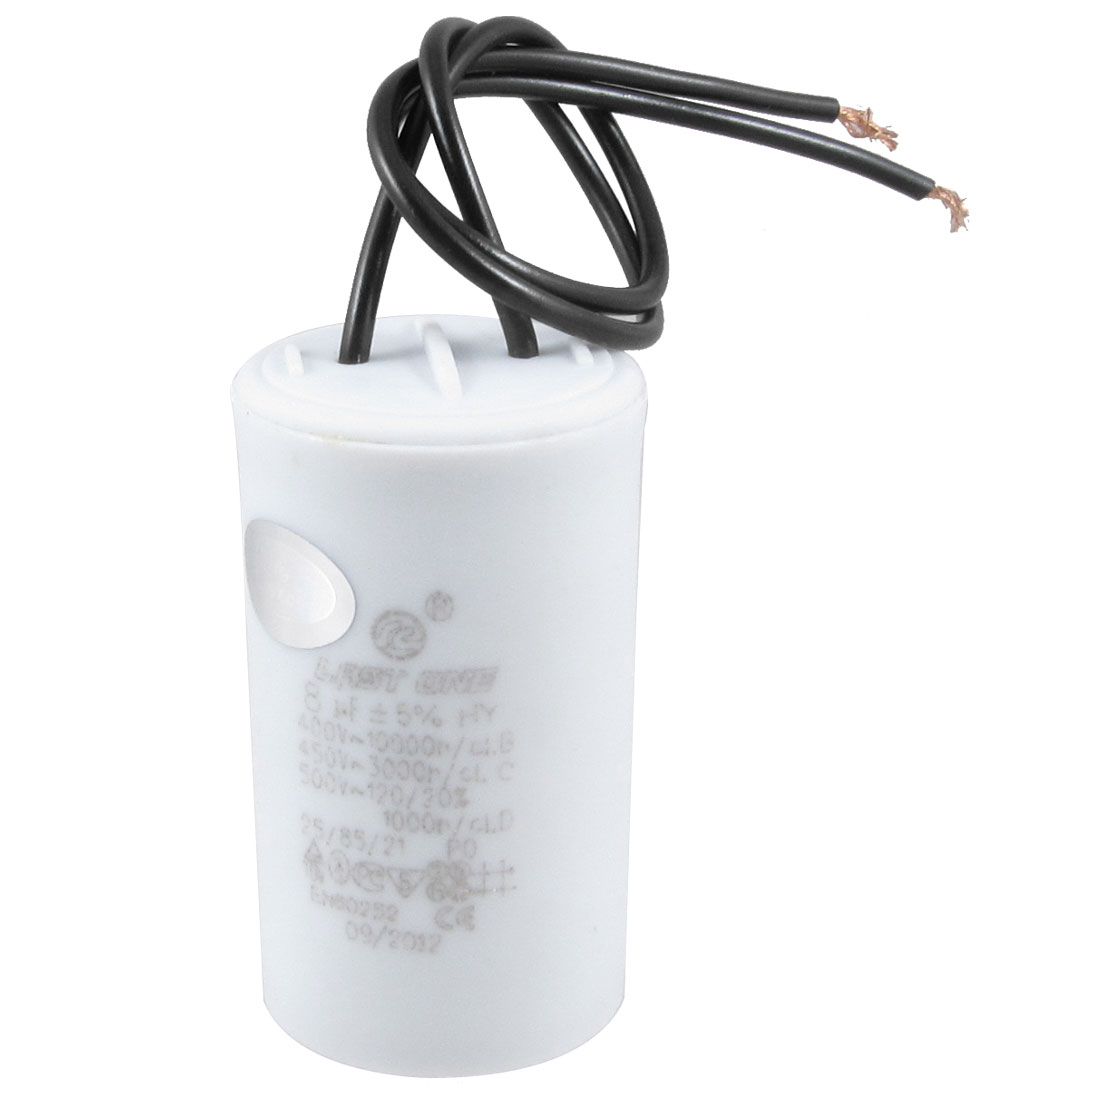 AC 400V/450V/500V 8uF 2-wire Motor Running Capacitor for Washing Machine Washer